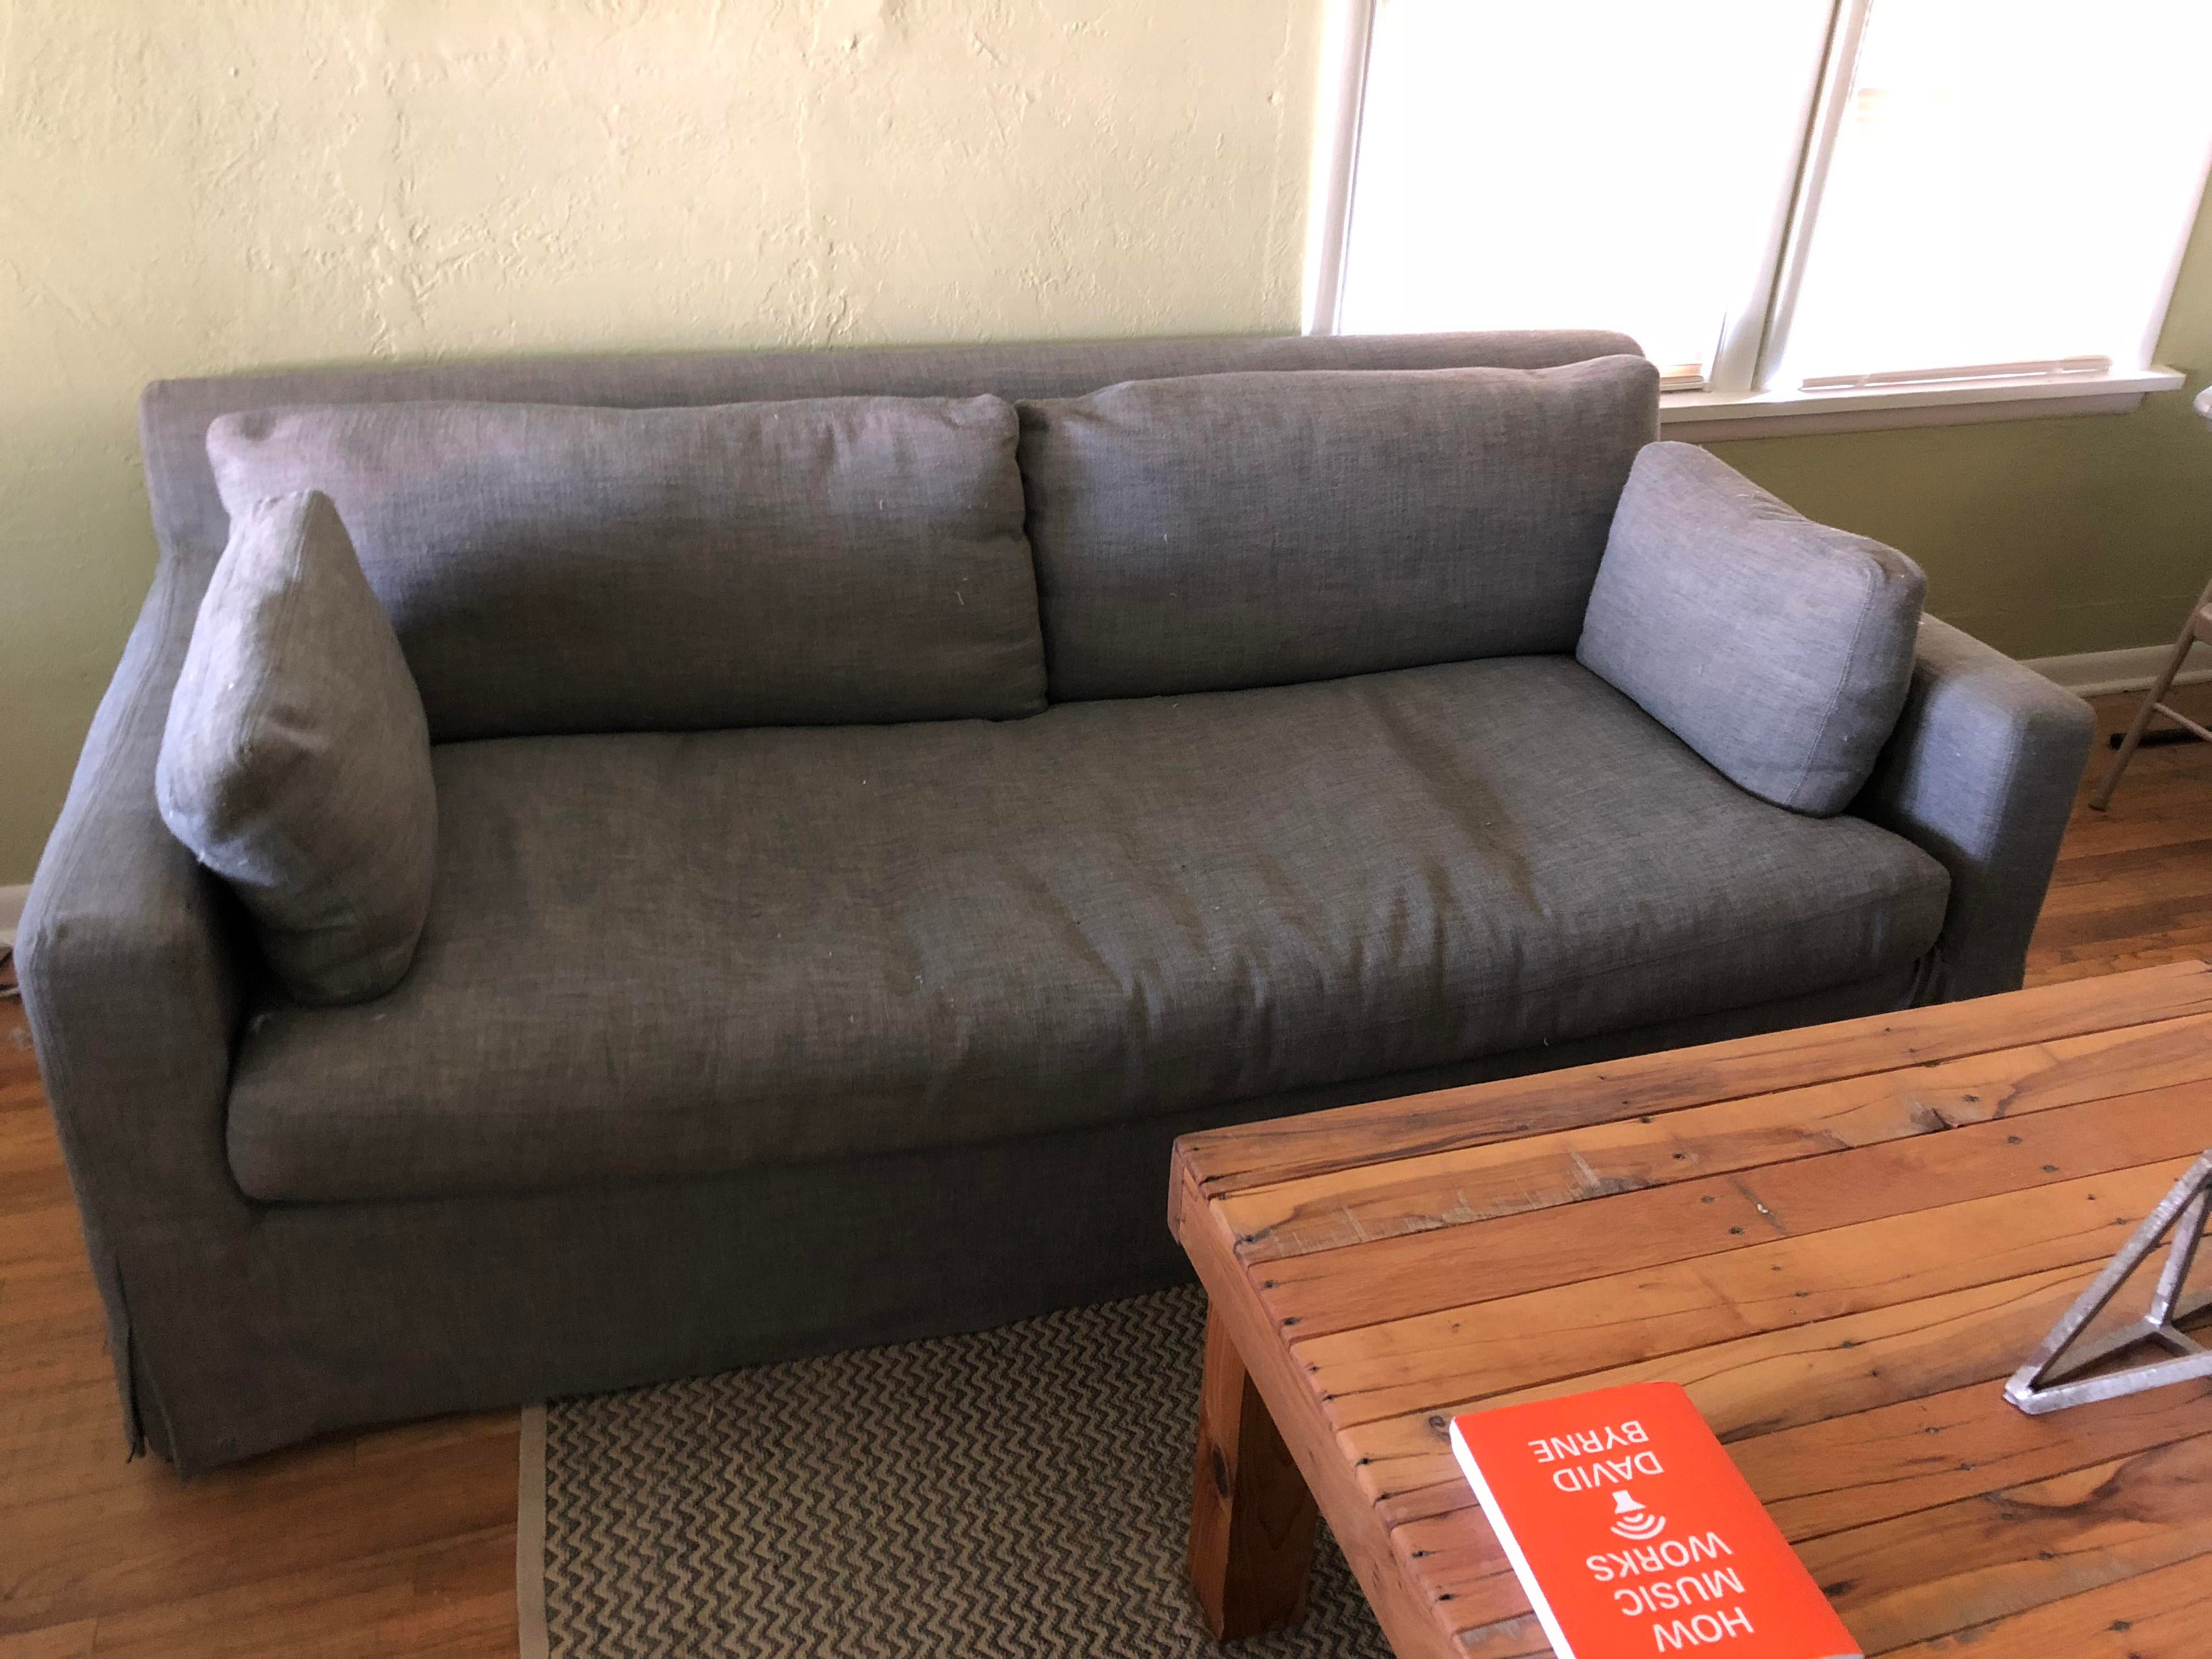 This Belgian Track Arm Slipcovered Linen Couch Cost Me Over $3500 Brand New.